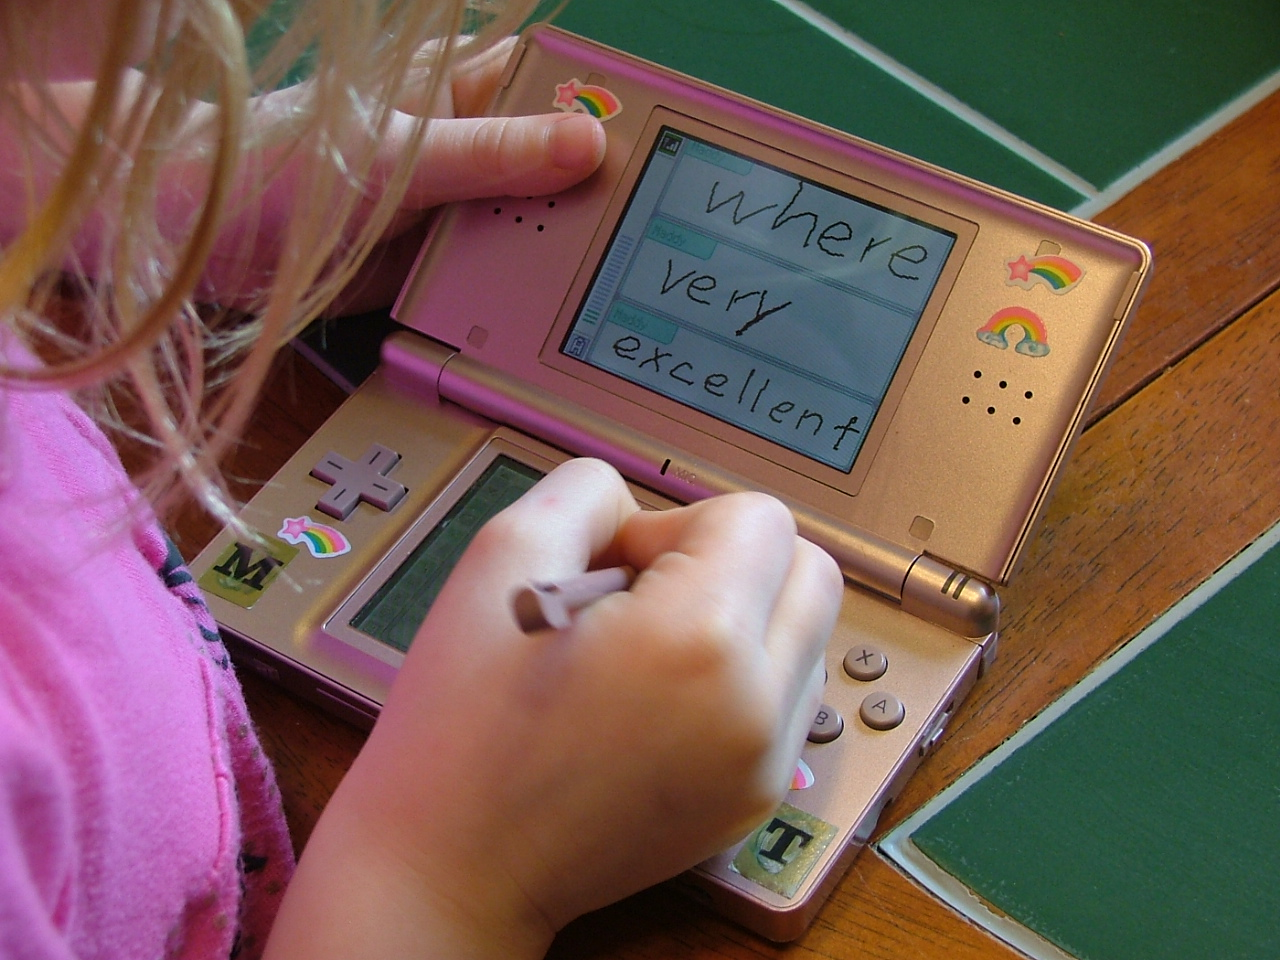 Spelling practice using a Nintendo DS